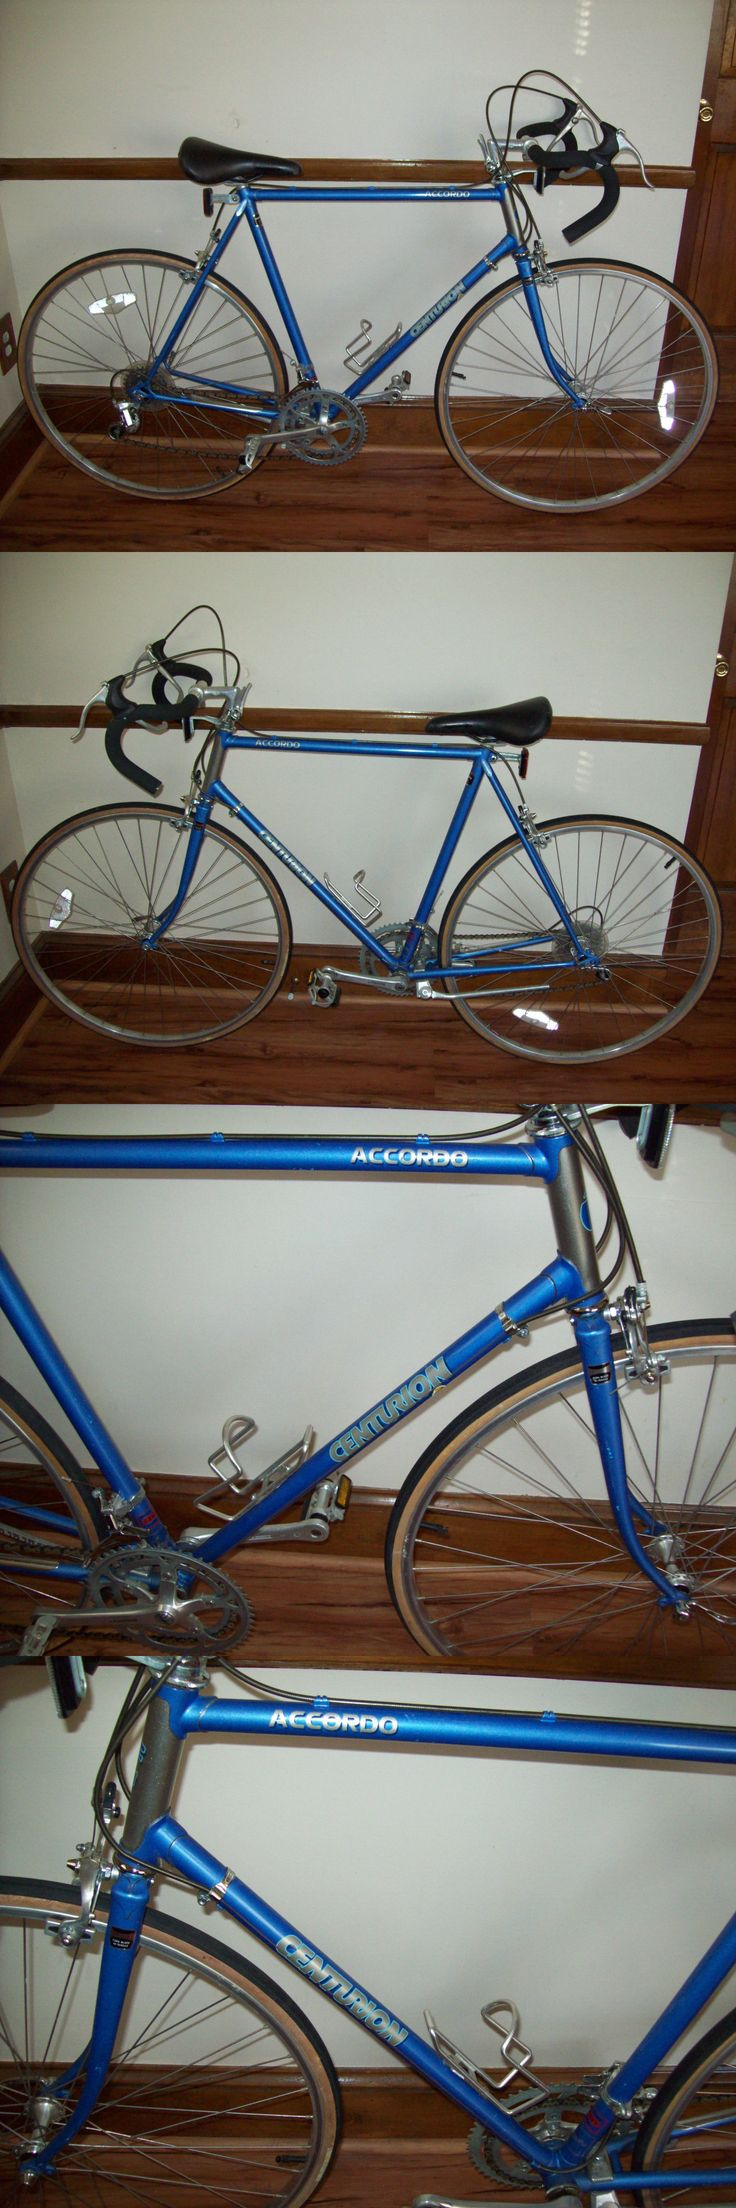 Vintage Bicycles 177858: Centurion Accordo Lugged Frame Road Bike Bicycle Made In Japan 58.42Cm BUY IT NOW ONLY: $199.99